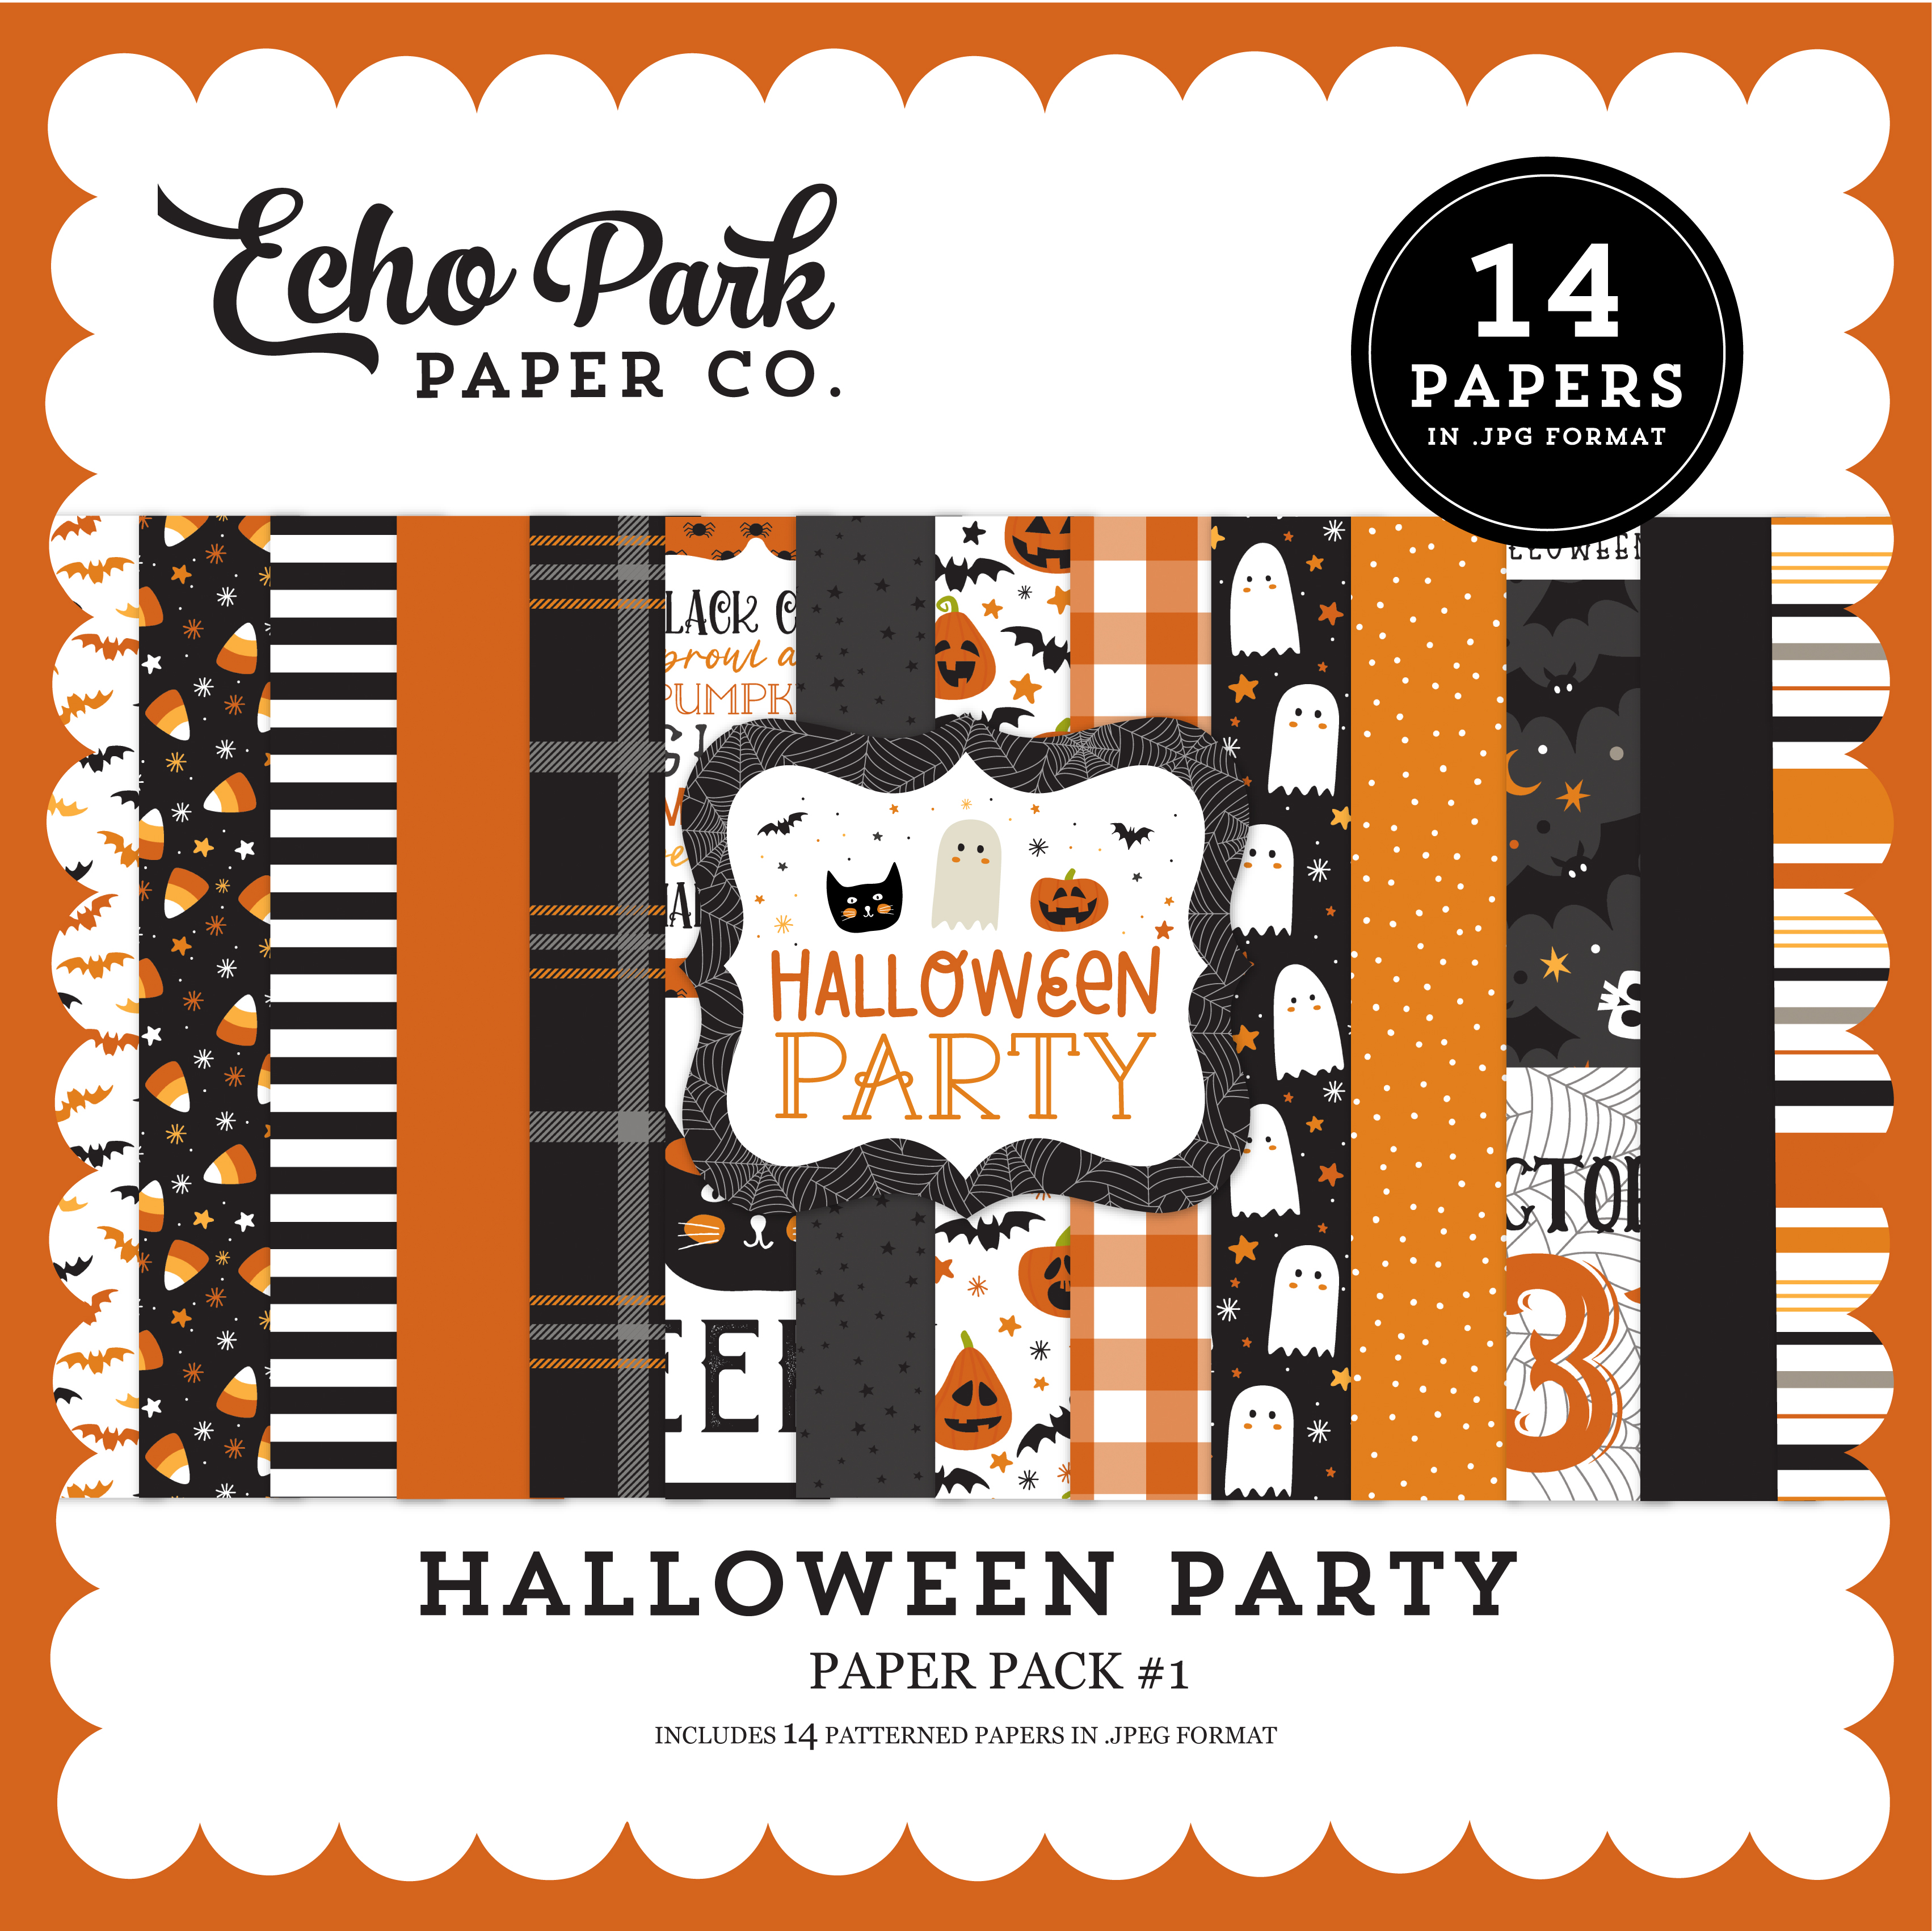 Halloween Party Paper Pack #1